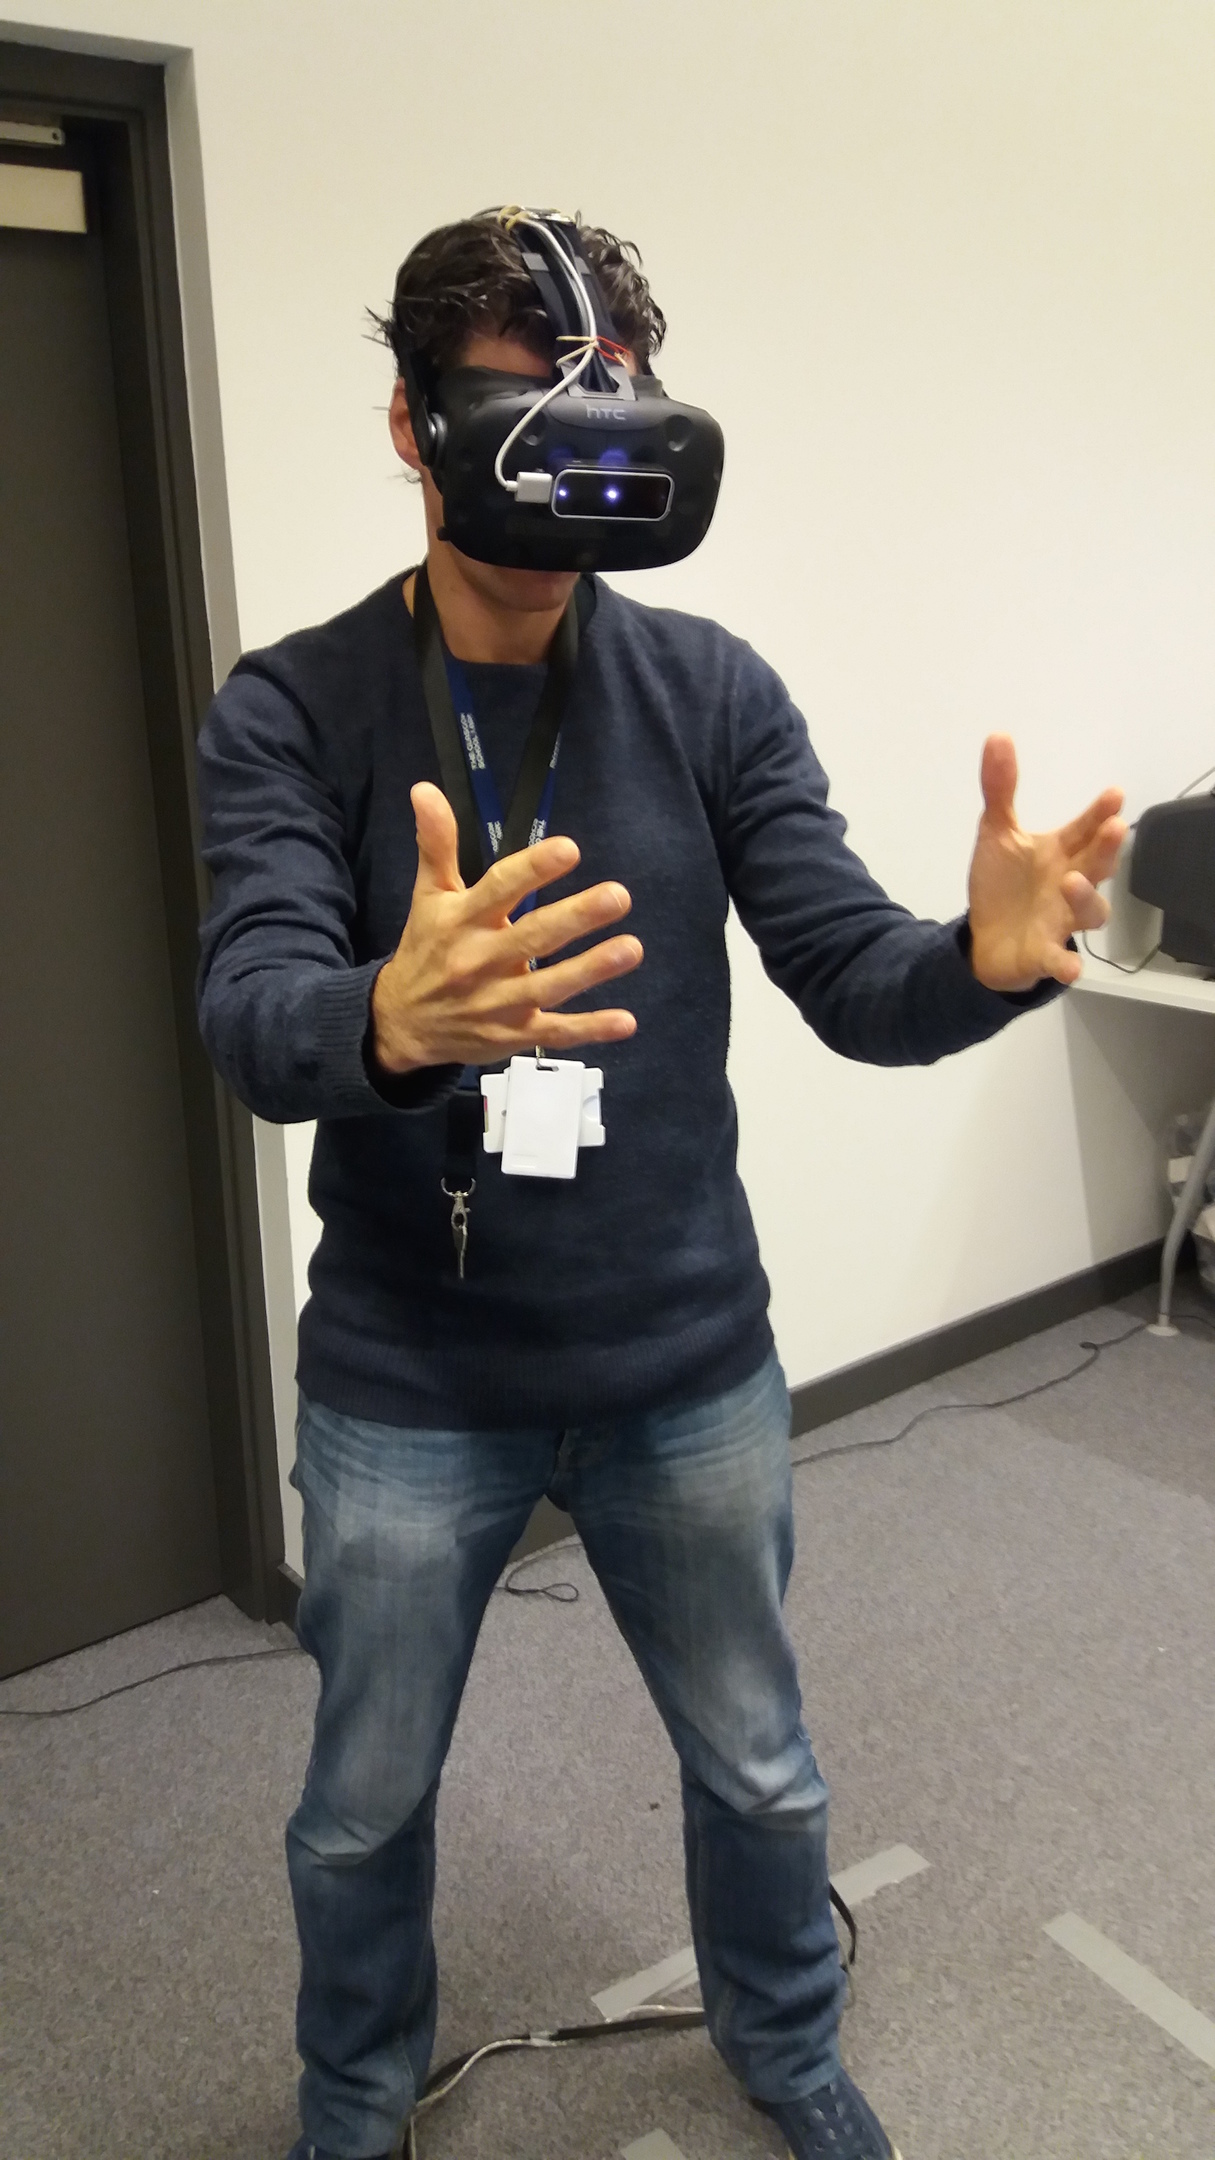 Matthieu Poyarde  tests out the VR headset